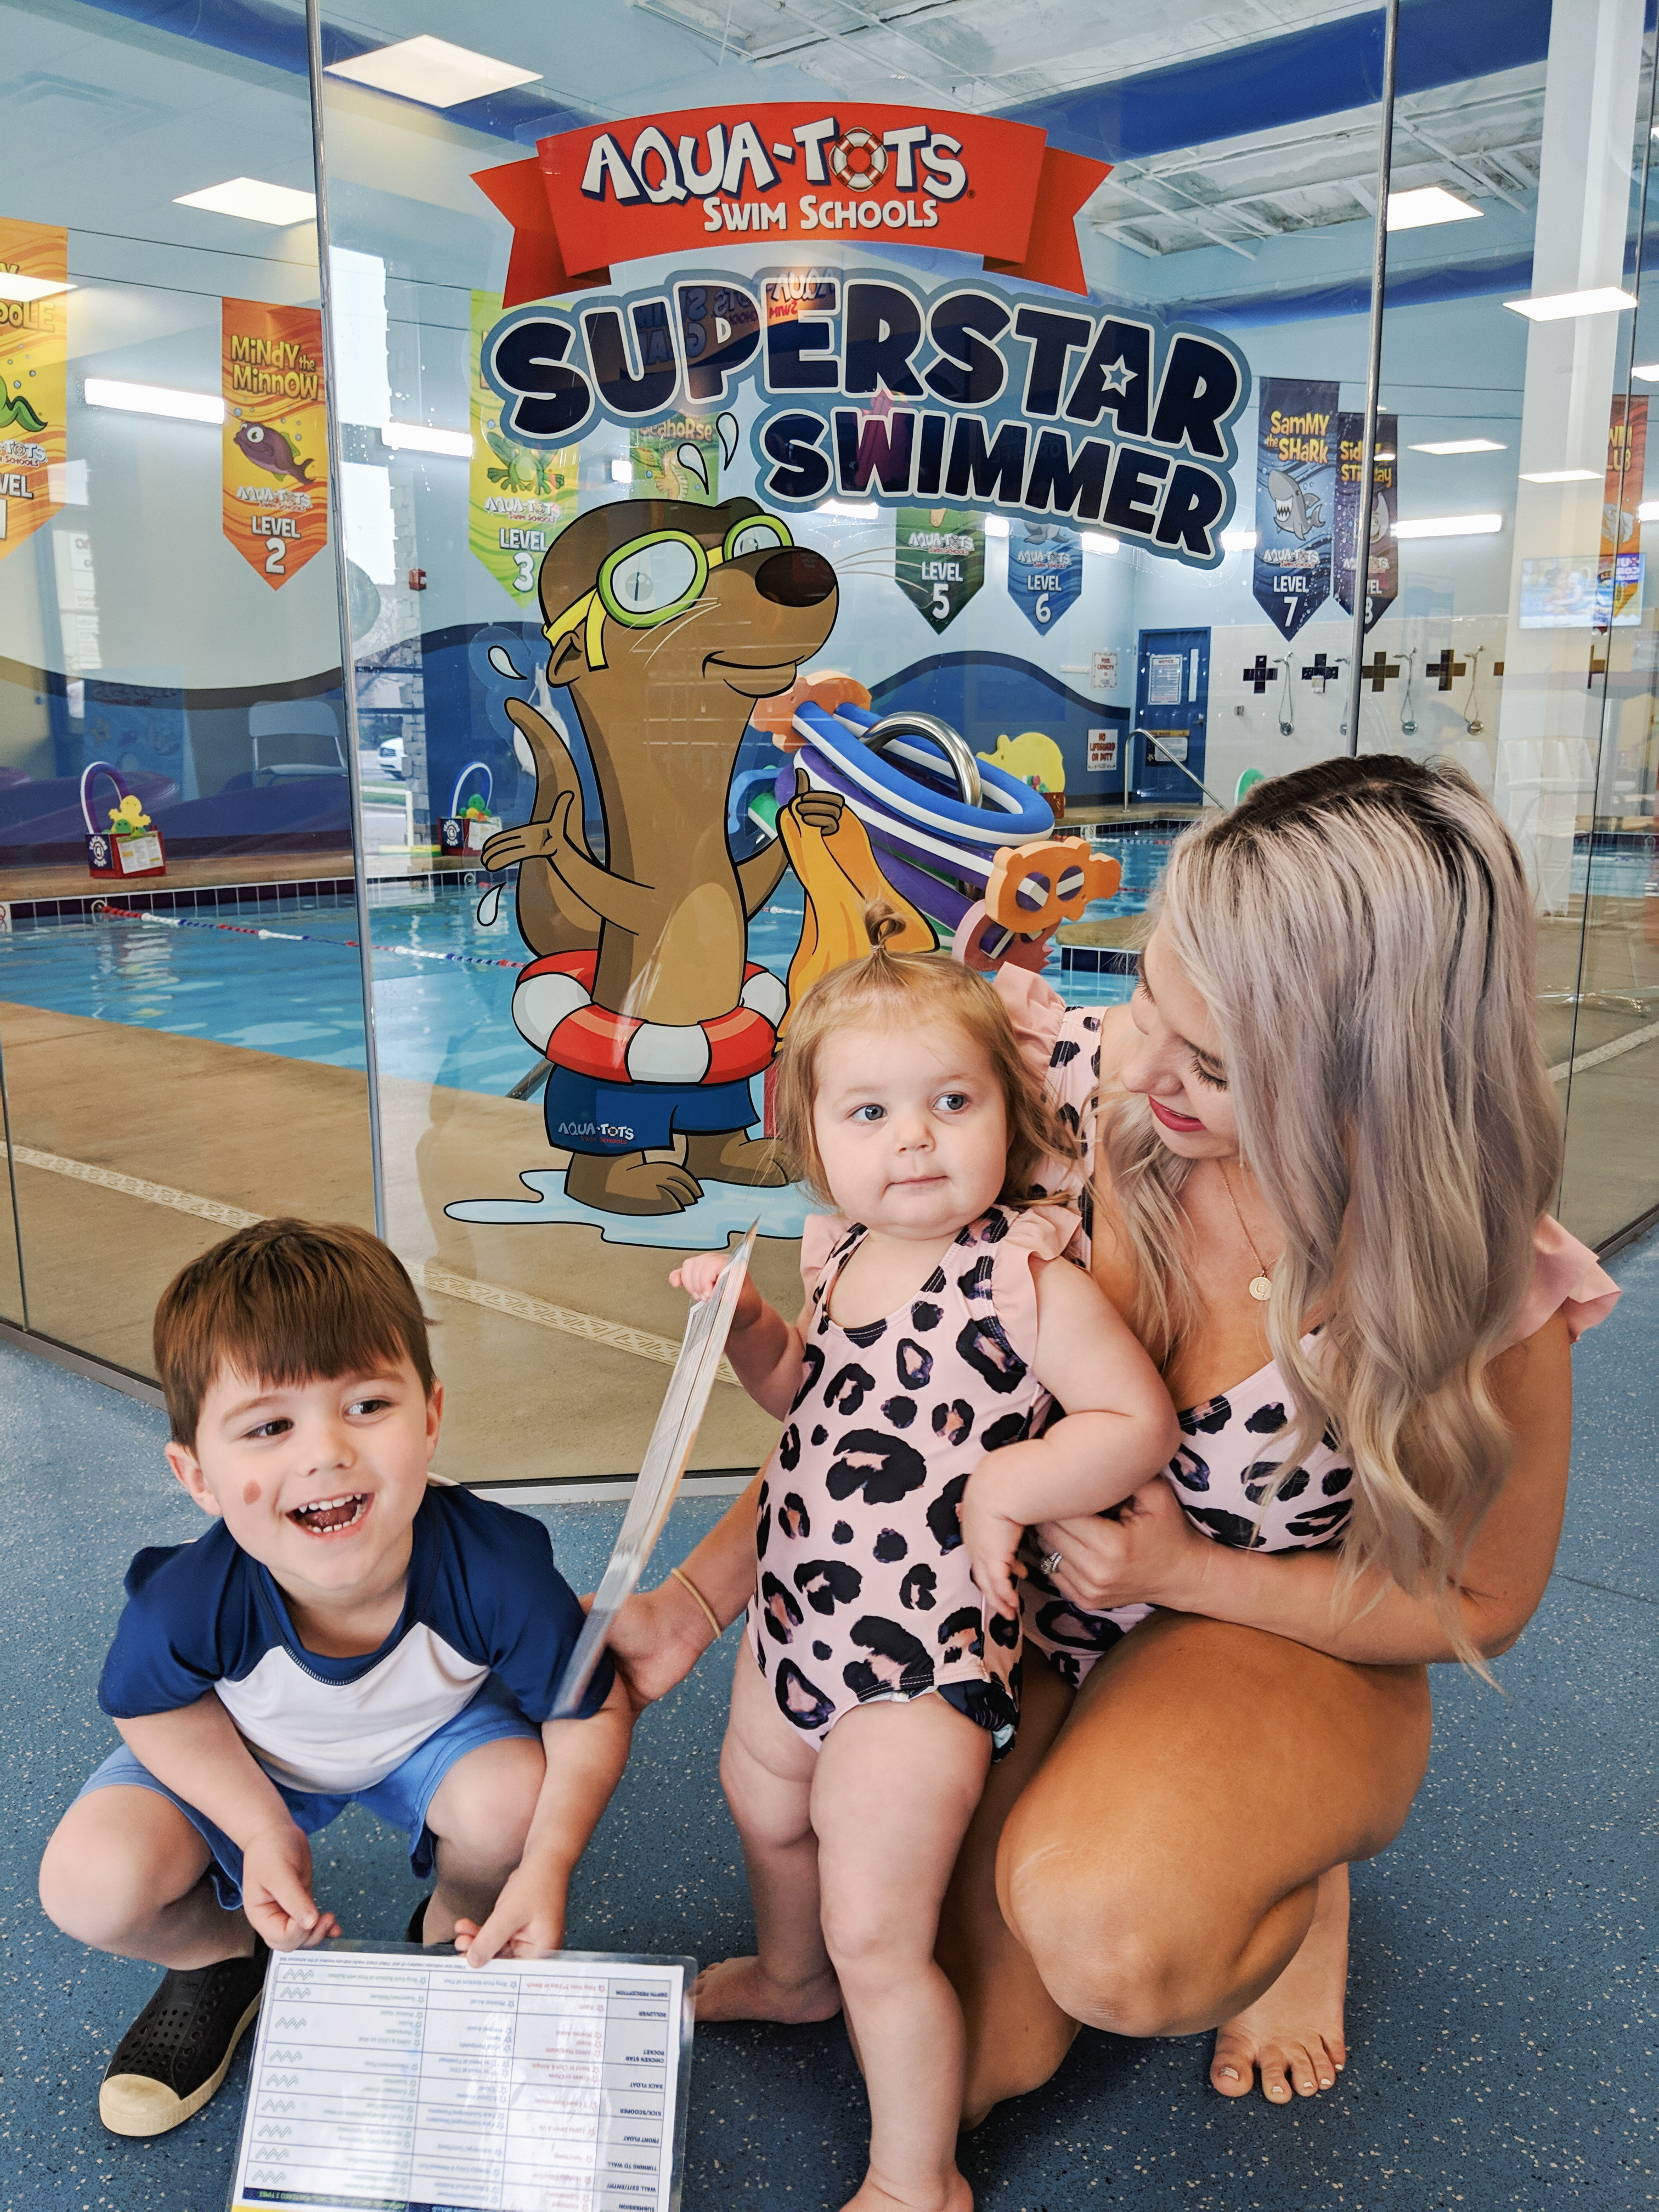 Water Safety Tips for Toddlers: May is National Drowning Prevention Month, so it's time to review water safety tips! Blogger shares water safety tips for toddlers learned from swim lessons at Aqua-Tots Swim Schools in Olathe, Kansas. #swimming #swimlessons #watersafety #toddlers